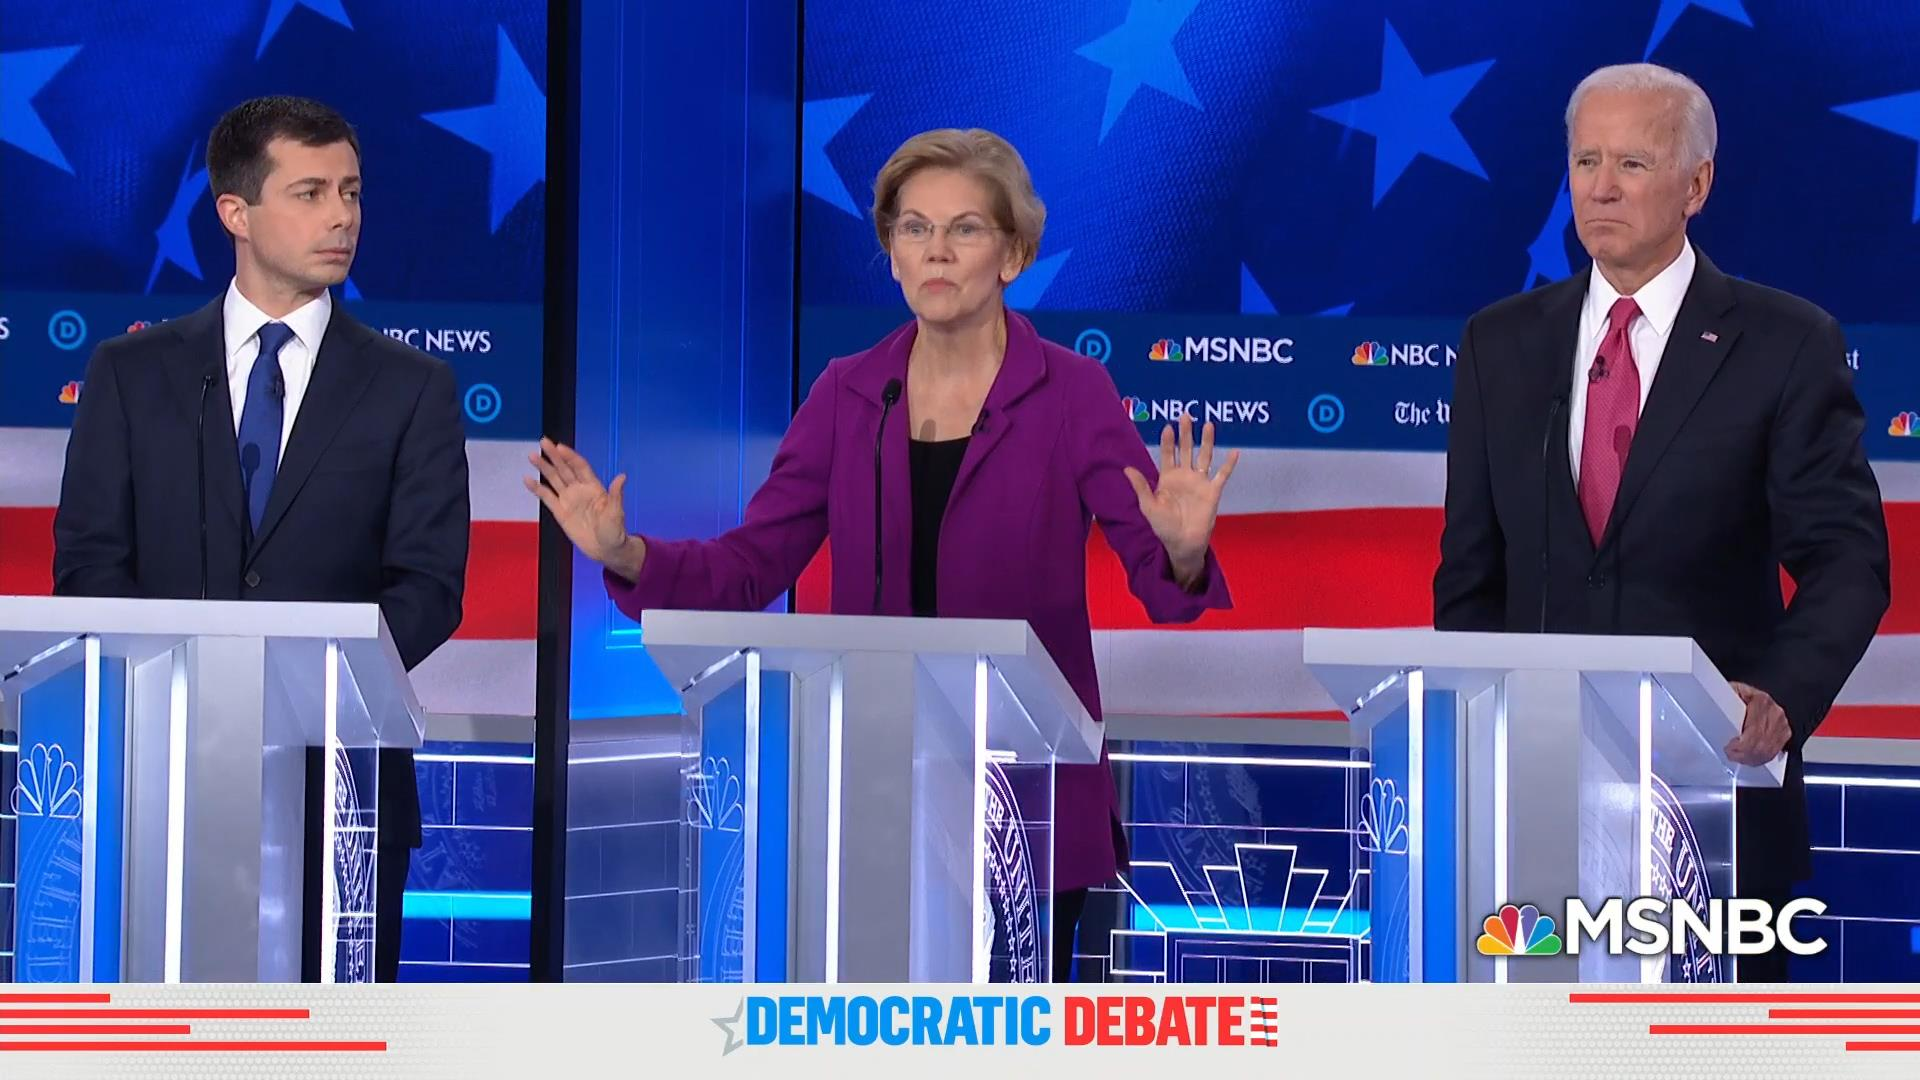 Women's issues take center stage at Democratic debate